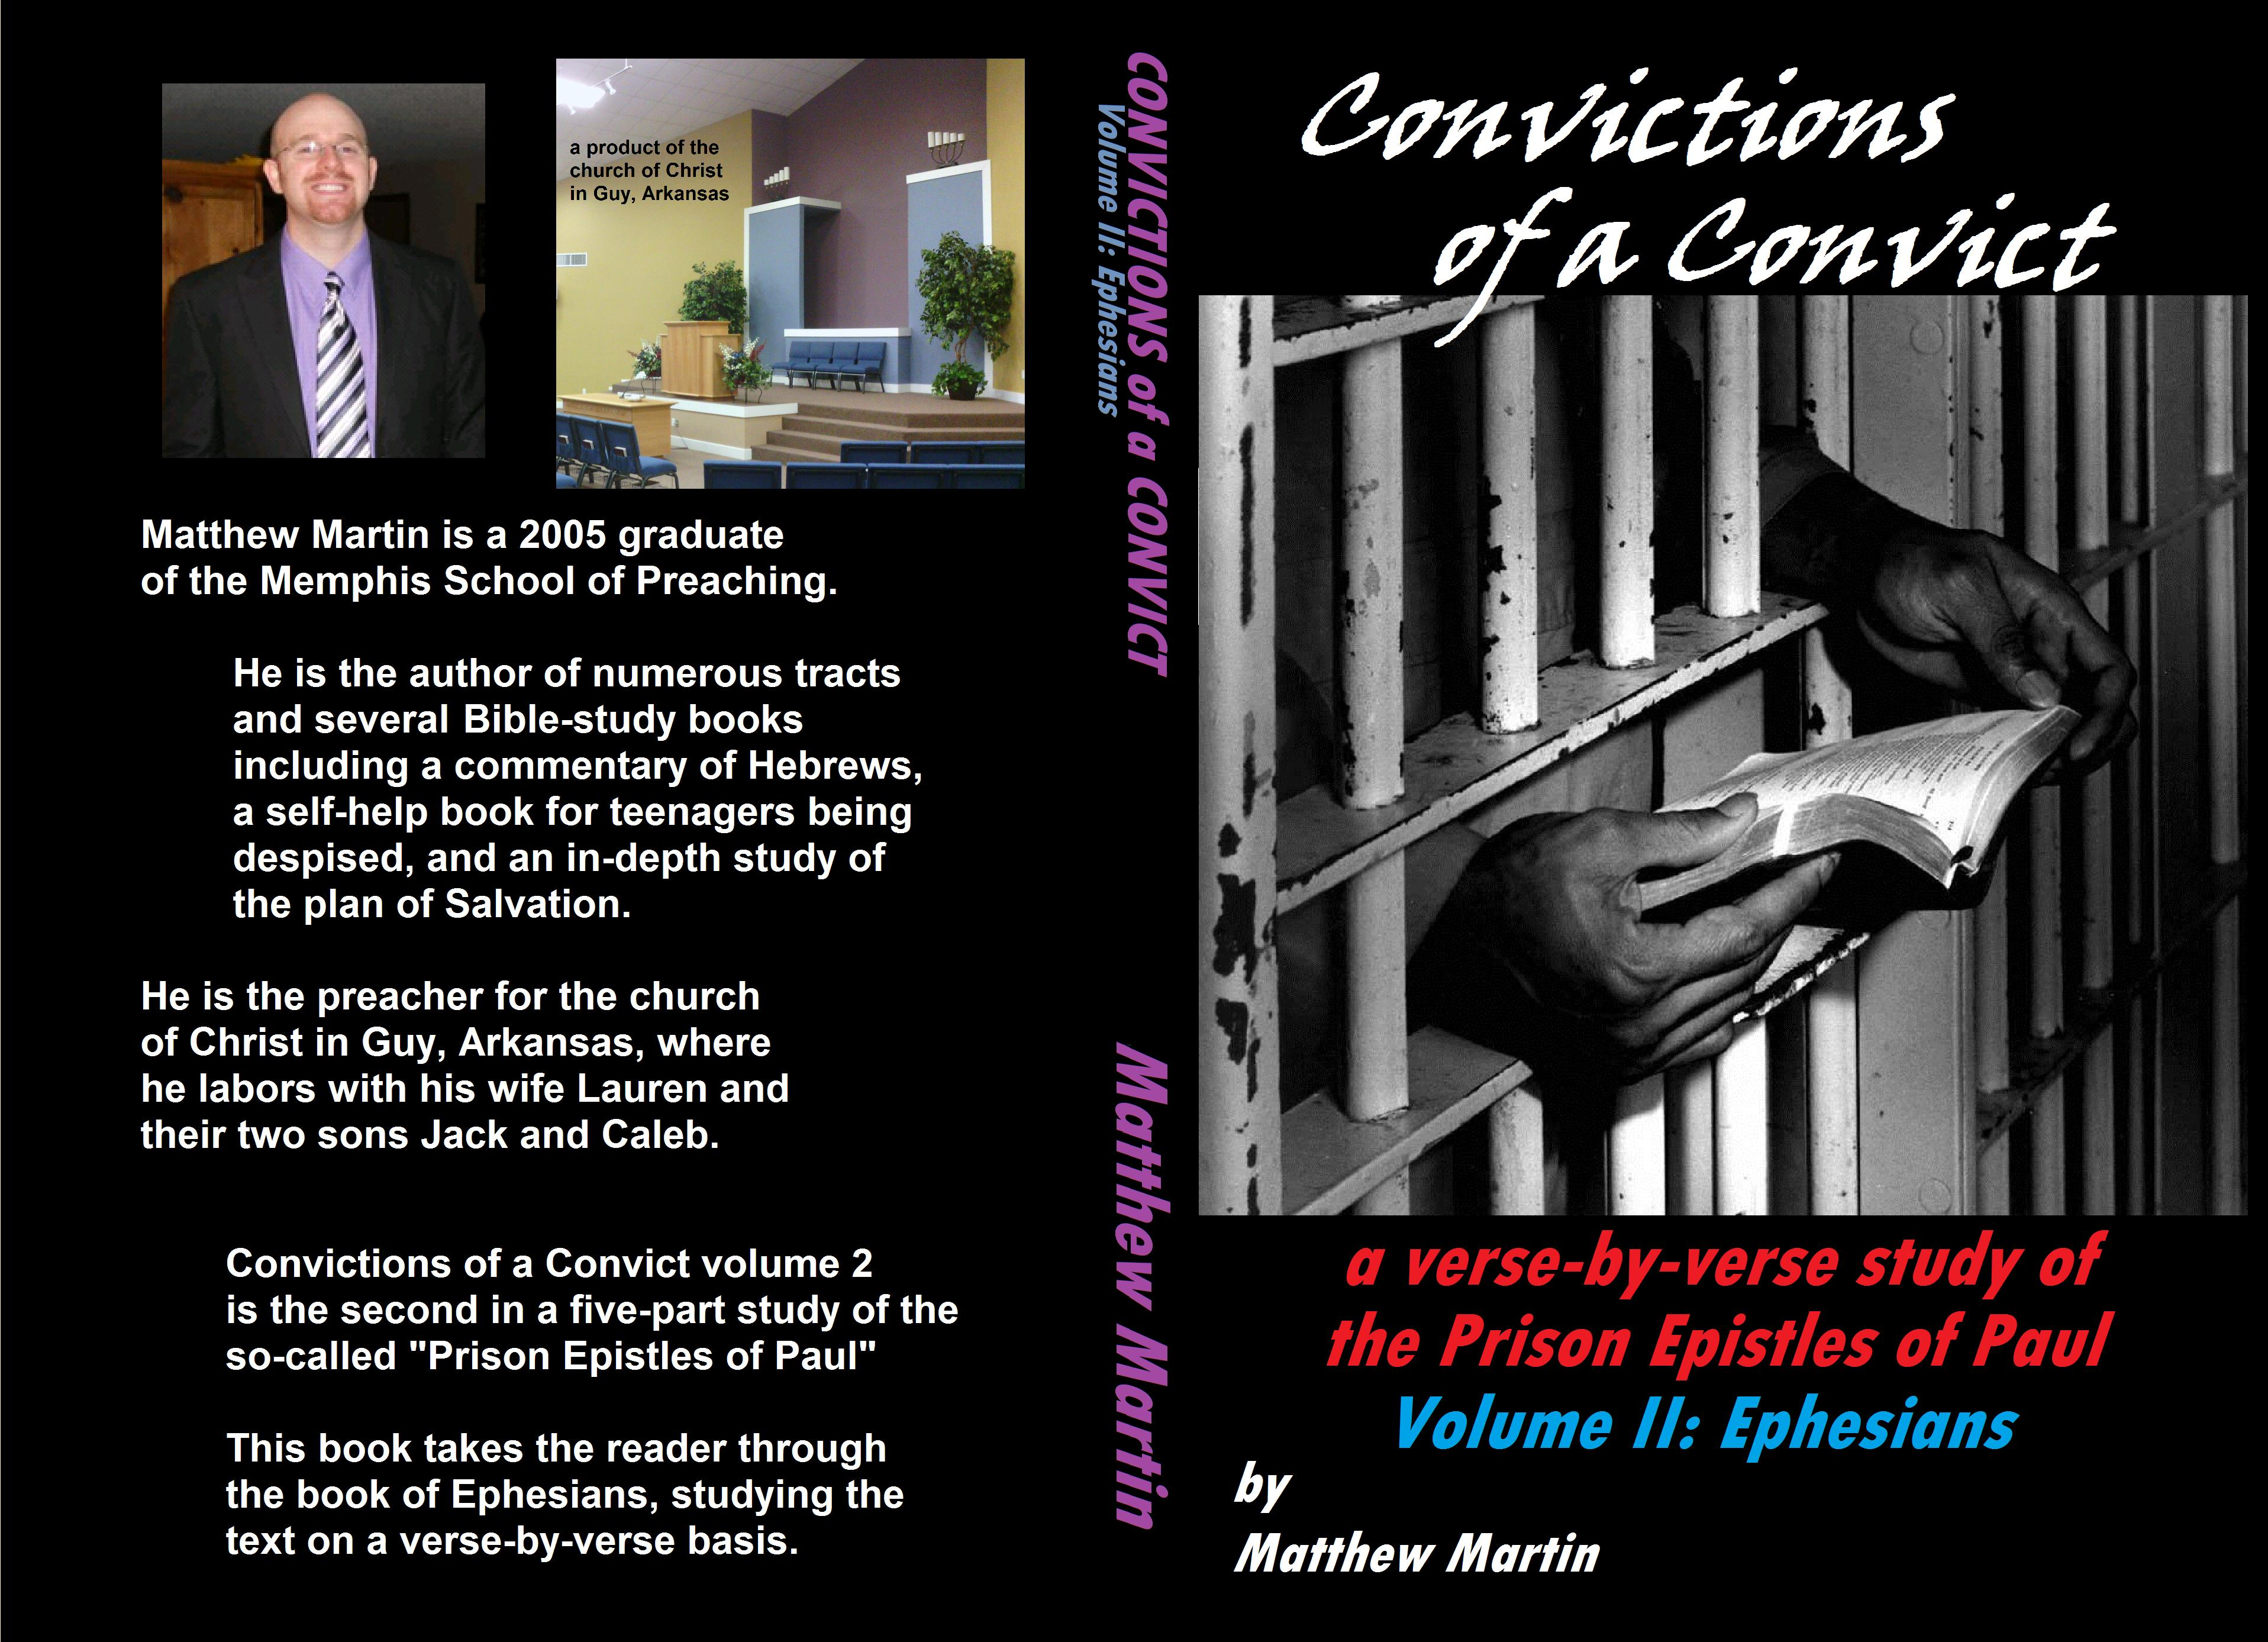 CONVICTIONS OF A CONVICT: VOLUME 2 -- EPHESIANS by Matthew Martin